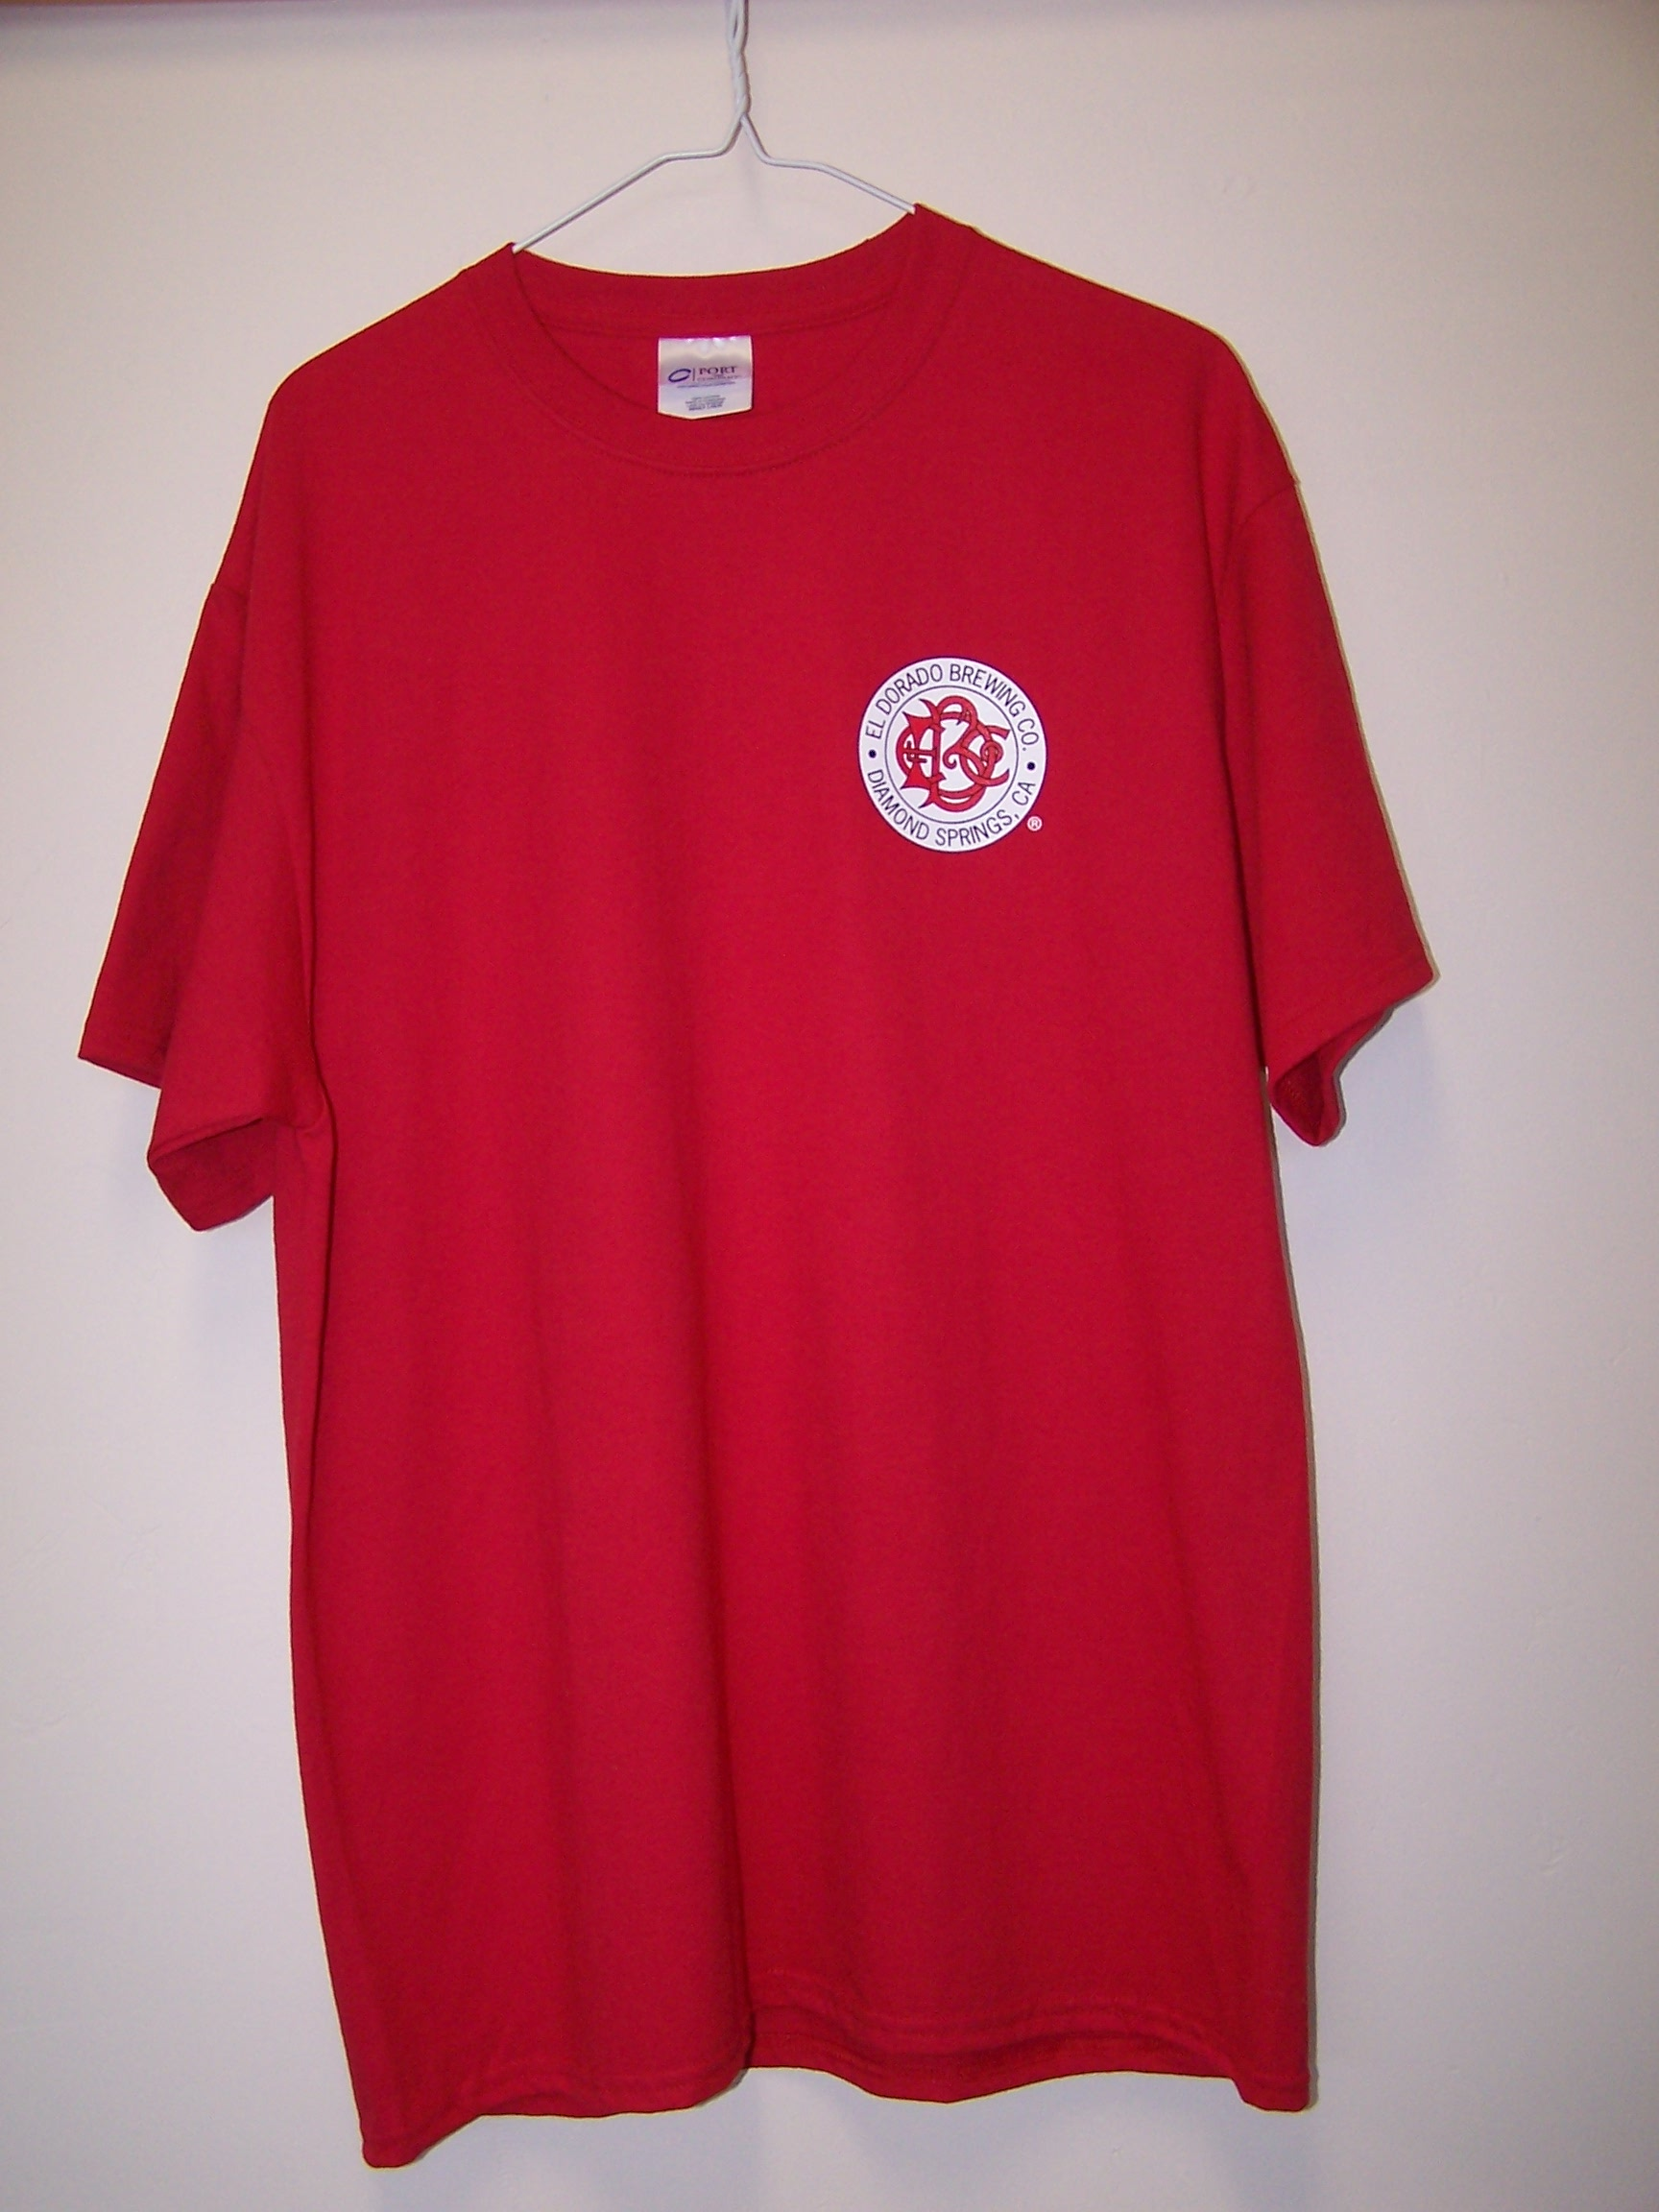 Red T-Shirt $20-25 [Small Logo Front]